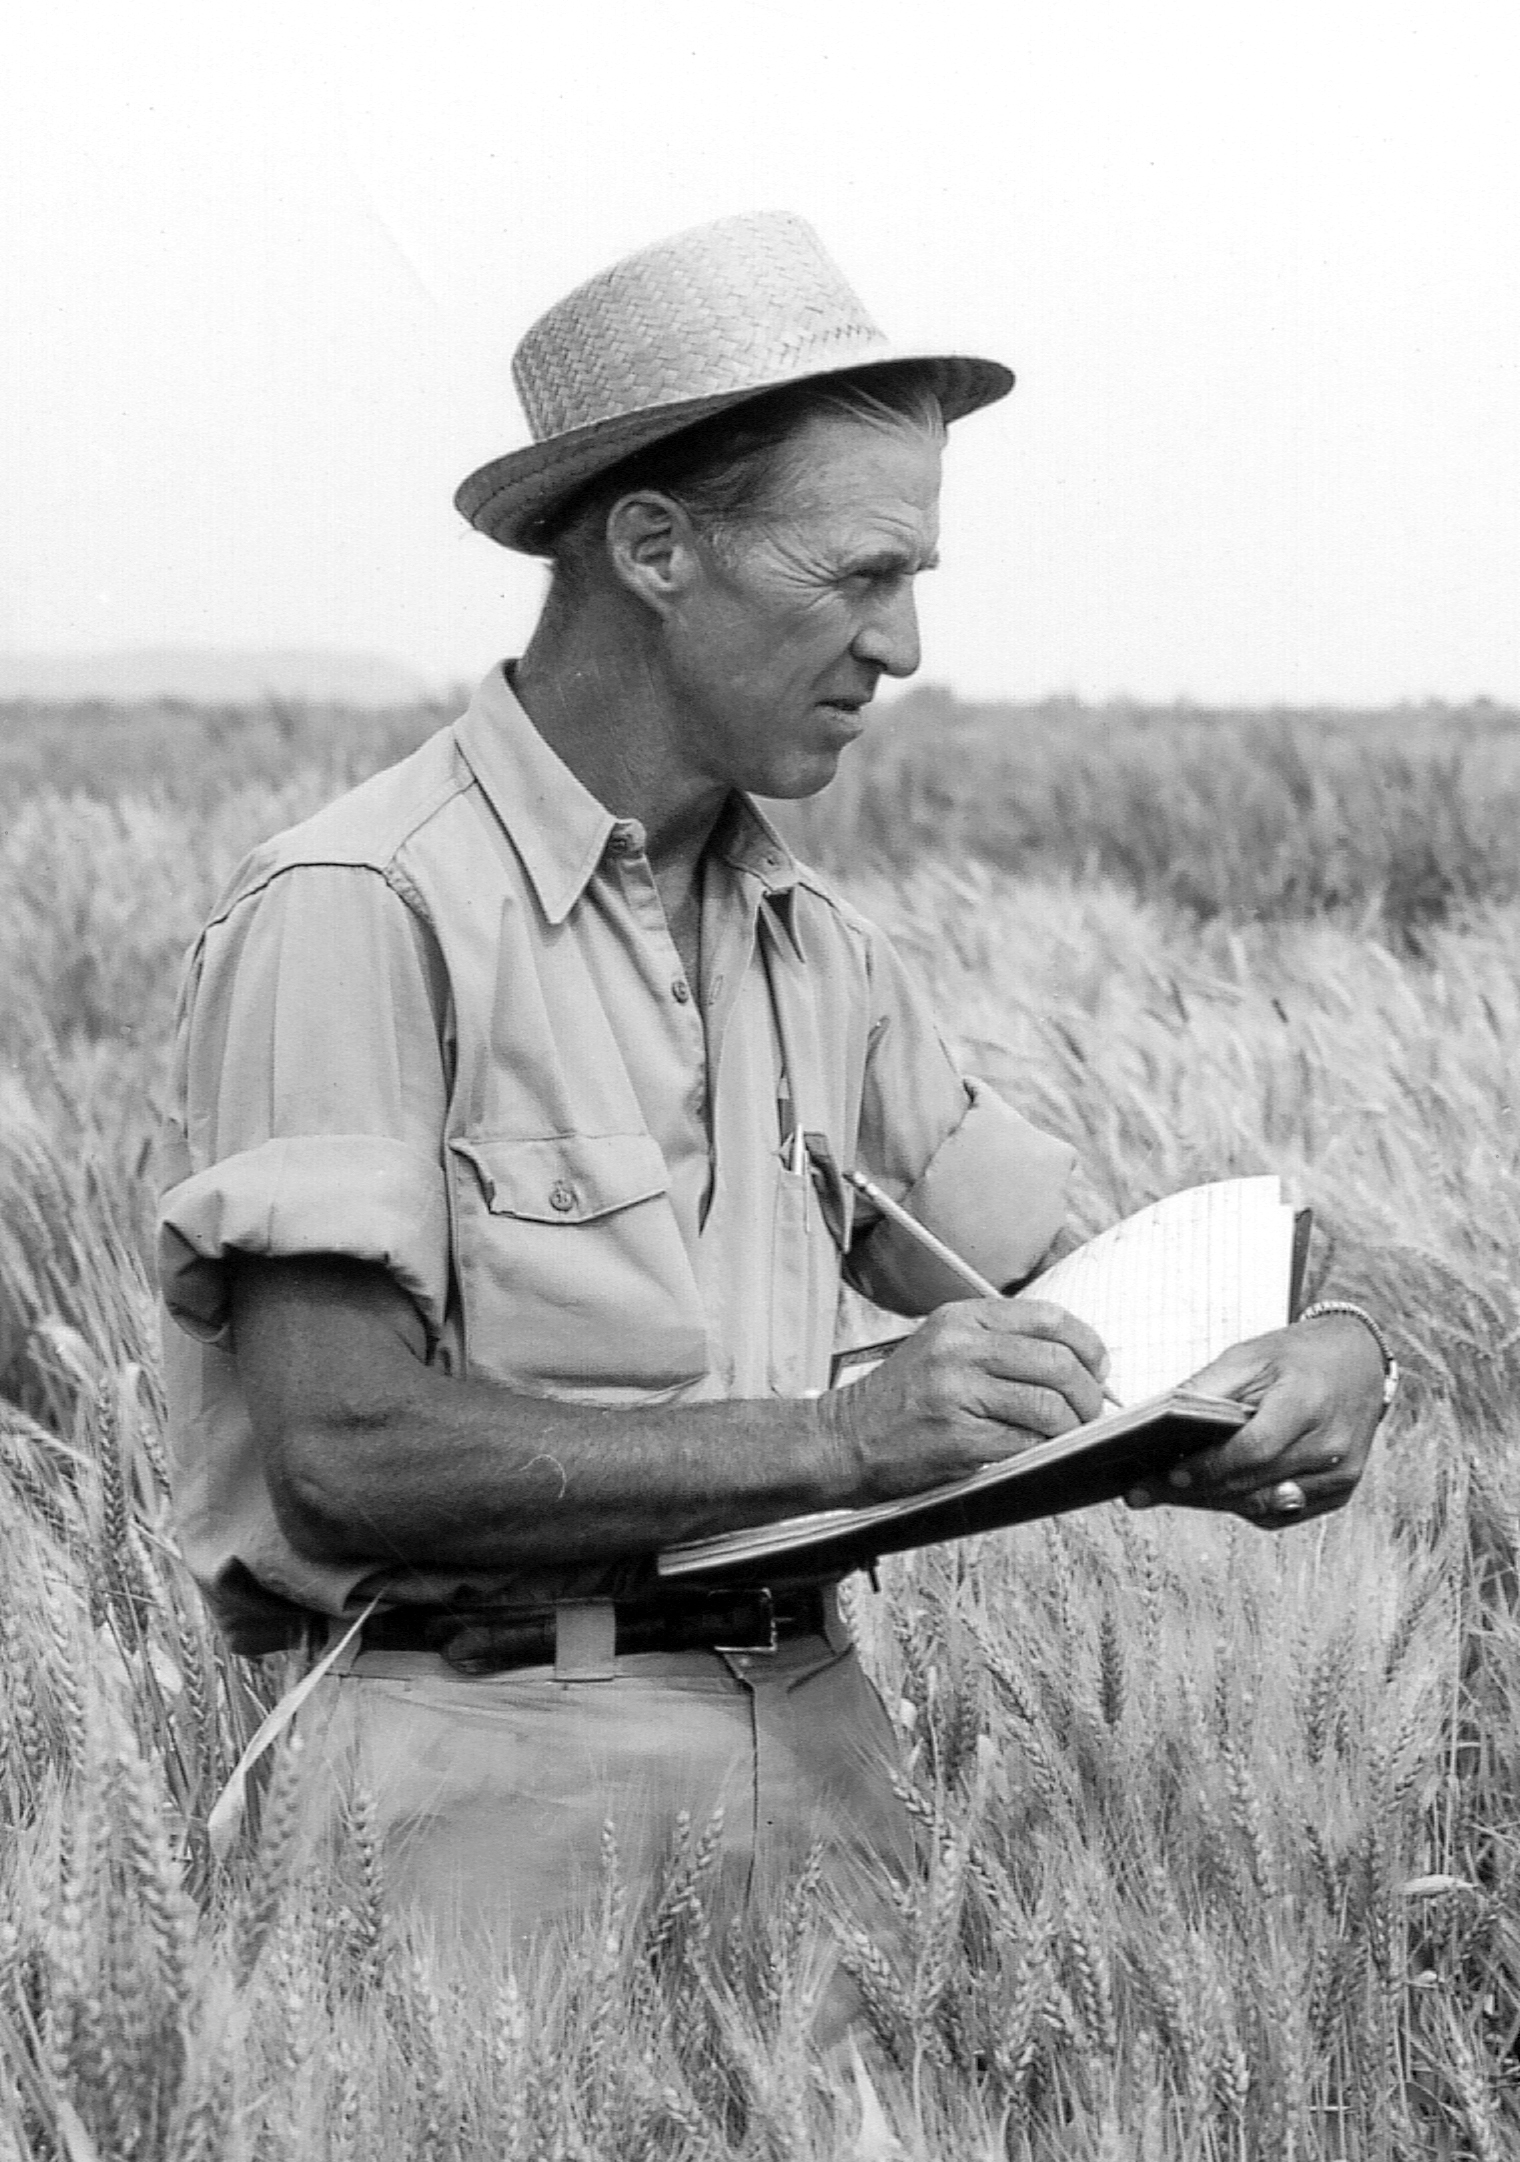 Technology Taken for Granted - Norman Borlaug